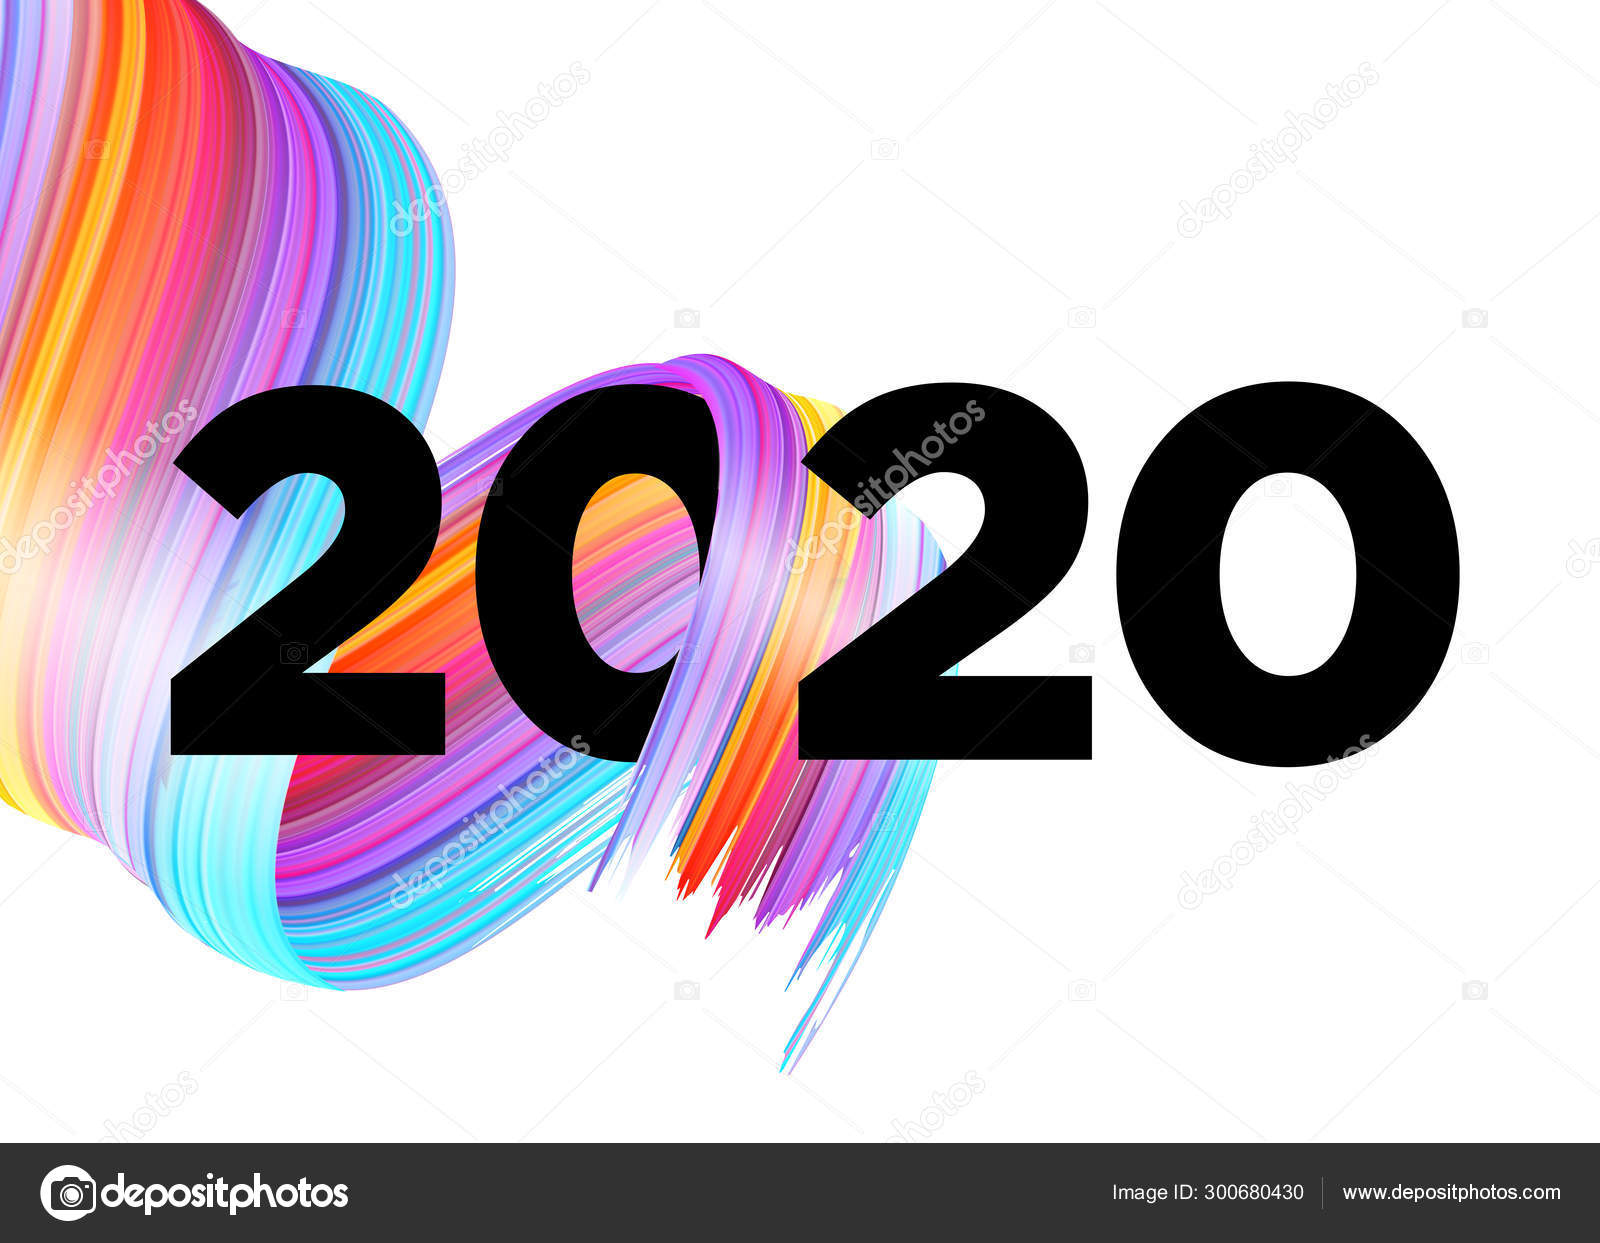 2020 happy new year background design vector lettering with abstract gradient brushstroke colorful illustration for calendar poster greeting card christmas celebration acrylic paint xmas design stock vector c haushe 300680430 2020 happy new year background design vector lettering with abstract gradient brushstroke colorful illustration for calendar poster greeting card christmas celebration acrylic paint xmas design stock vector c haushe 300680430